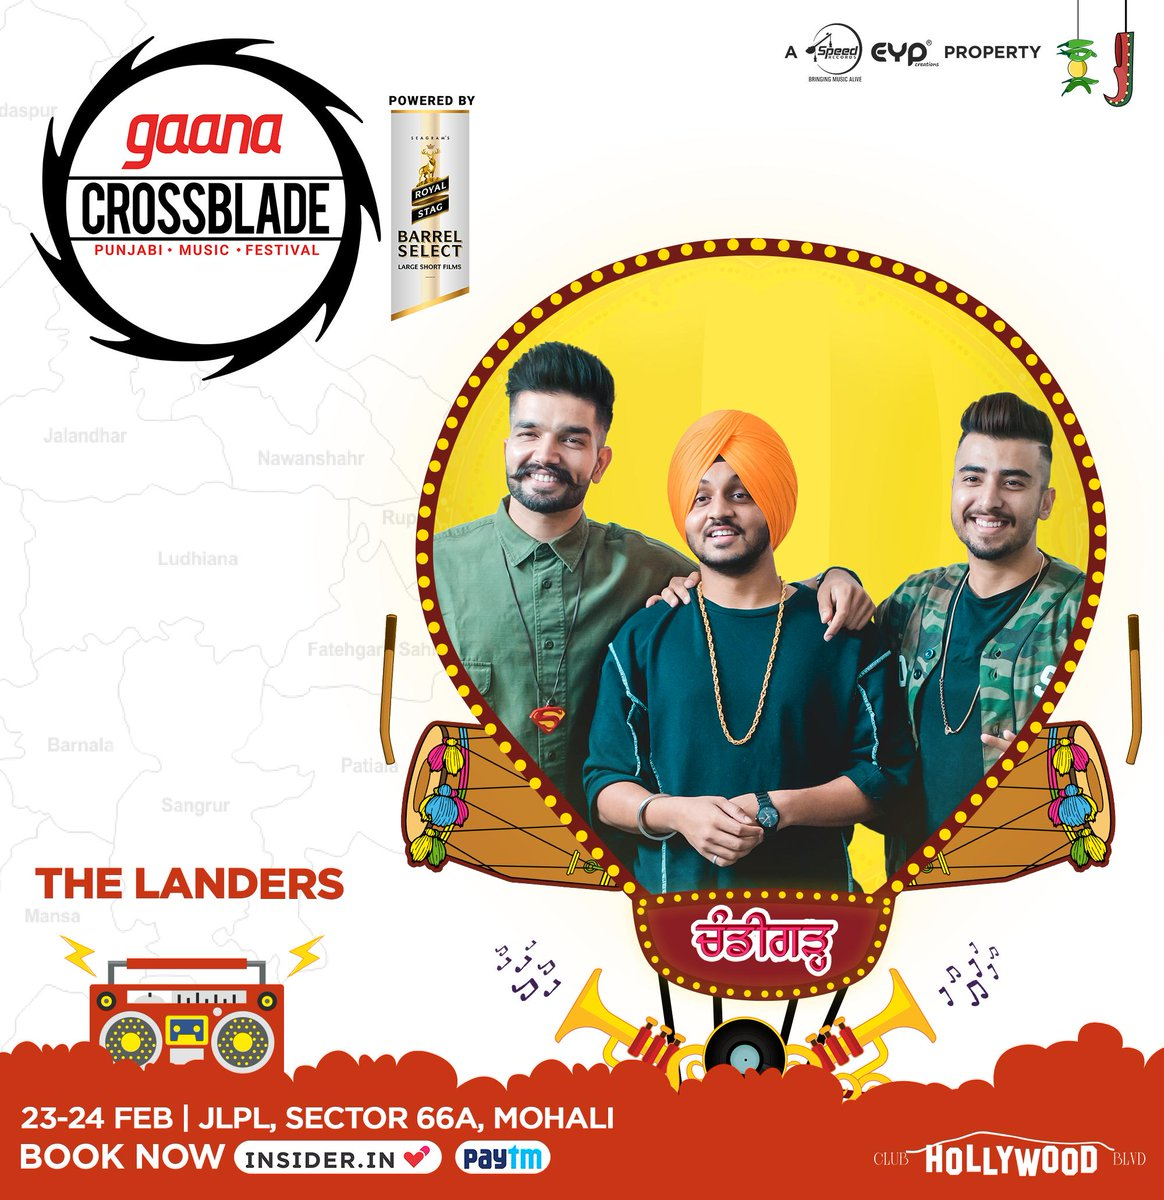 #TheLanders are going to land directly on the stage of @Crossbladelive day after tomorrow! Don't miss the chance to watch all the Punjabi Superstars at Mohali, Chandigarh! Book your tickets NOW! @eypcreations @Speed_Records